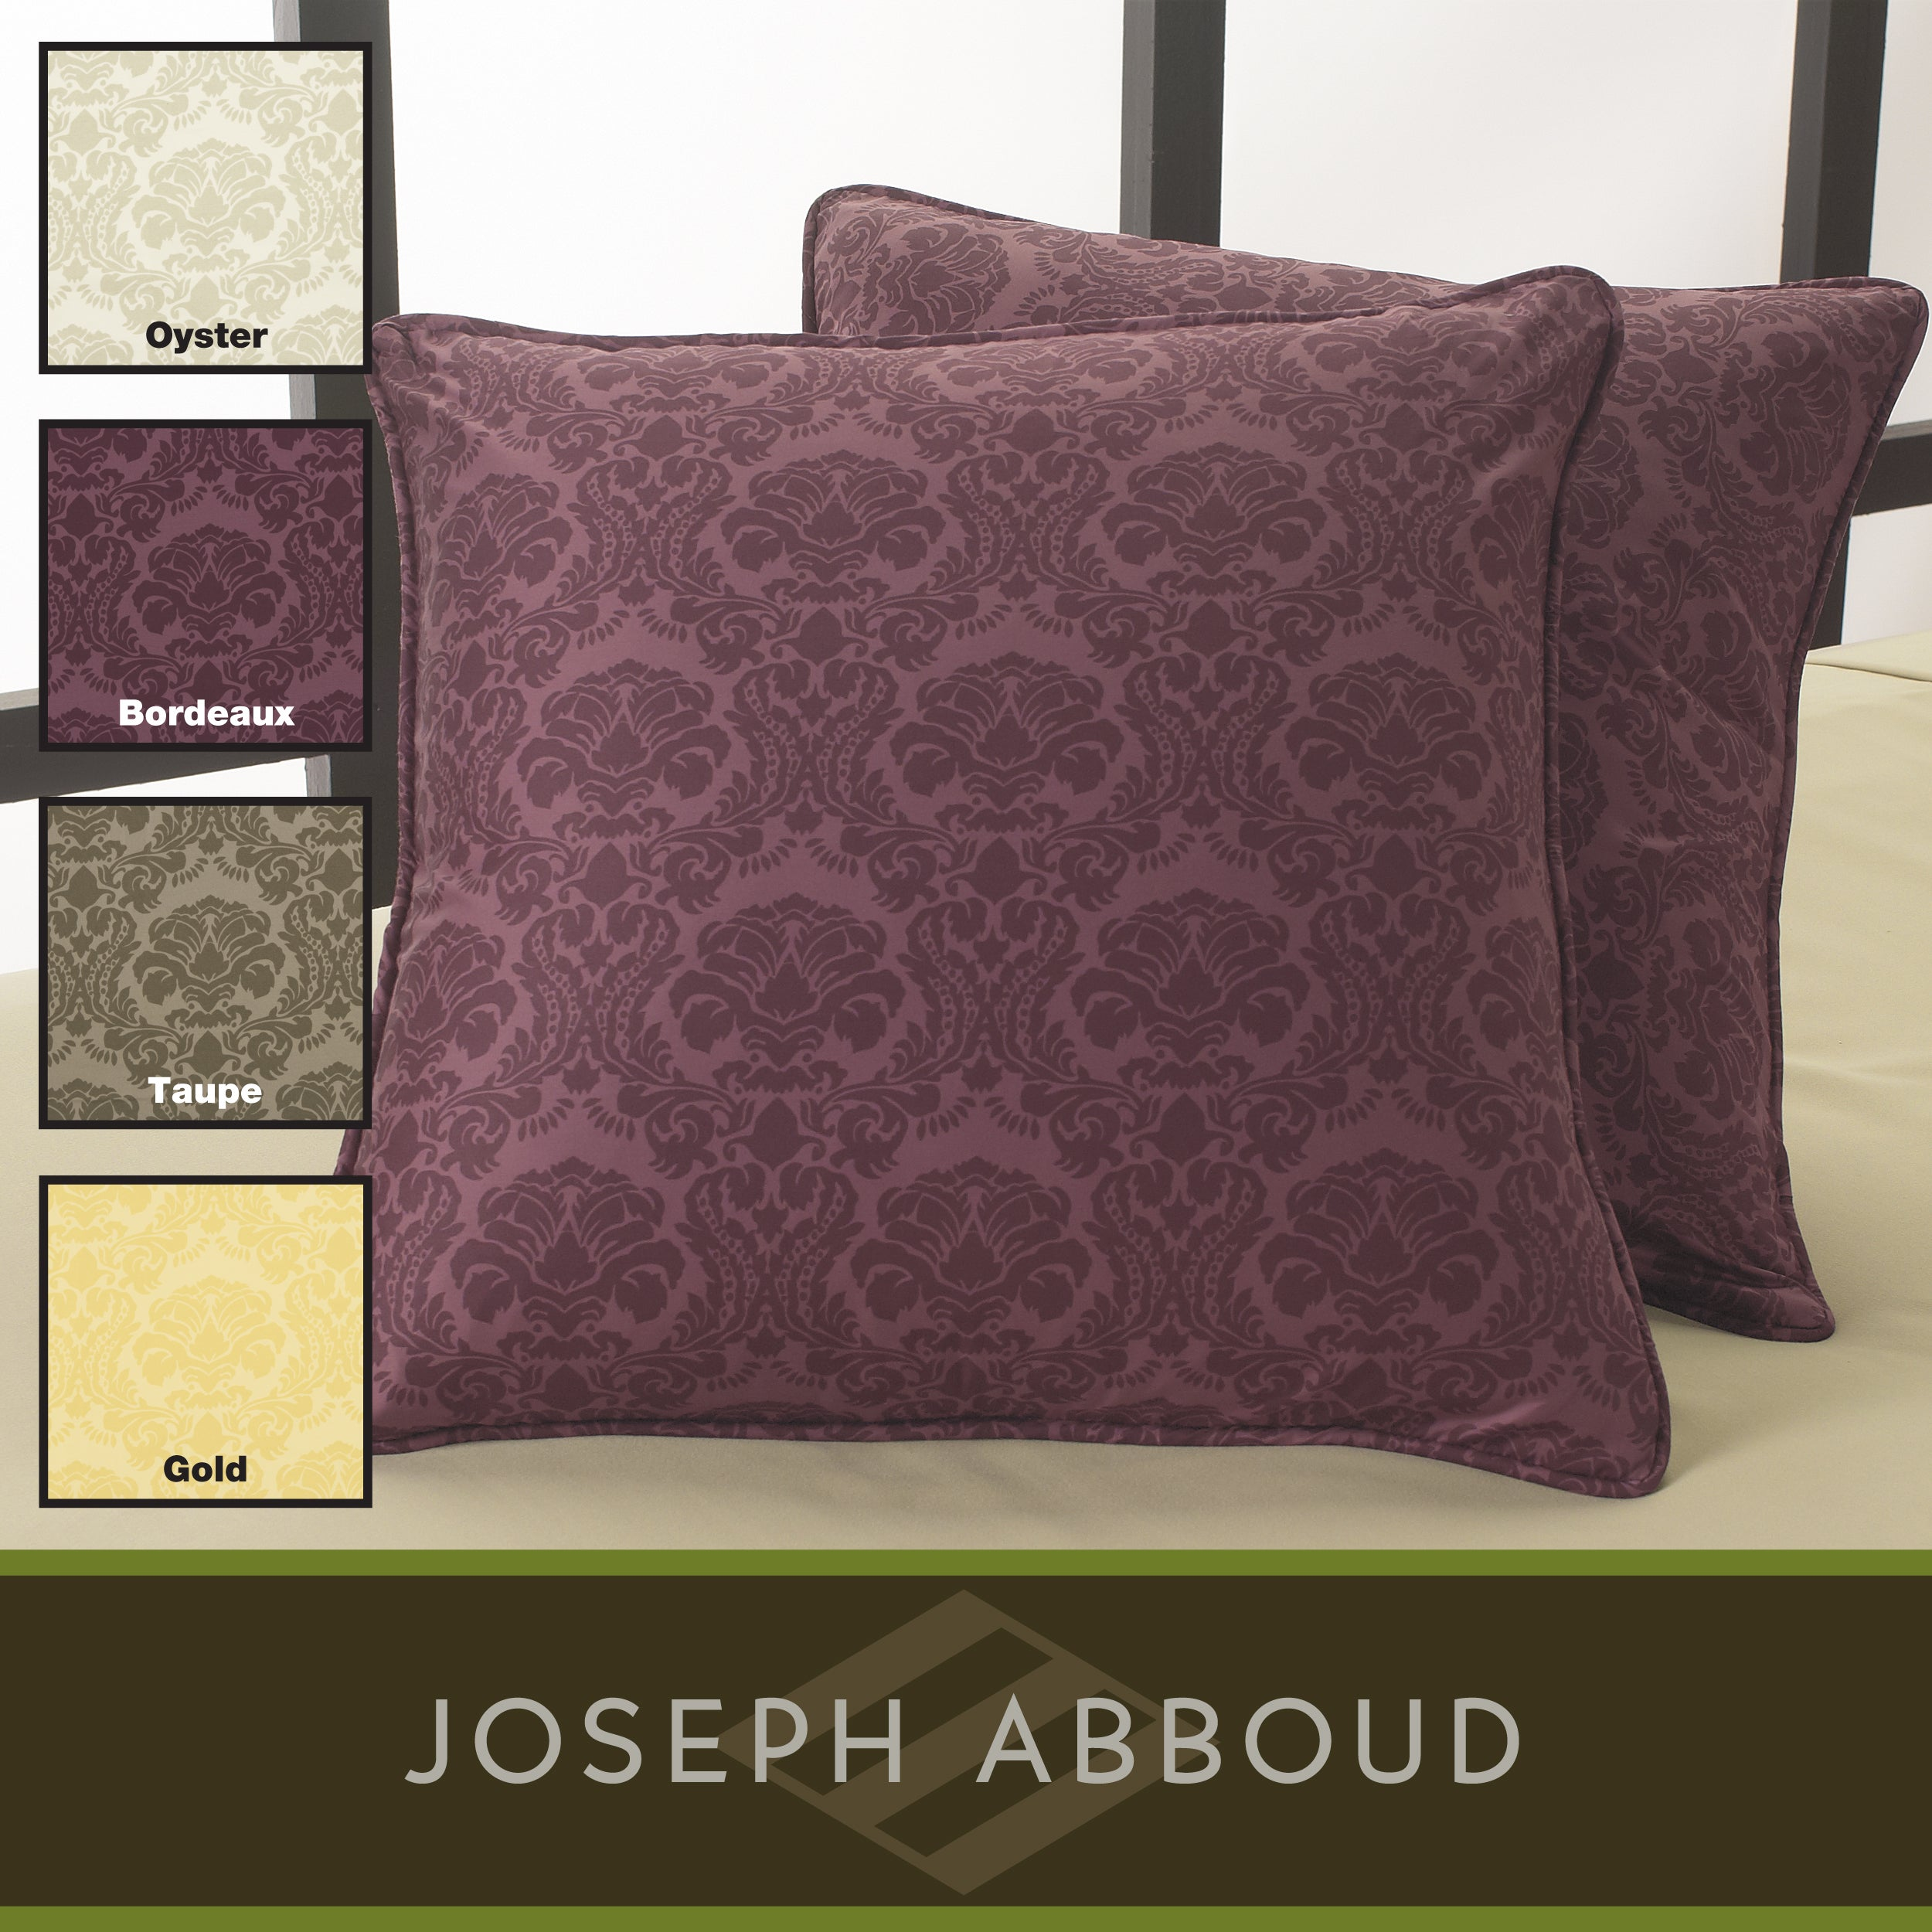 Joseph Abboud 350 Thread Count Decorative Feather Pillows (Set of 2)